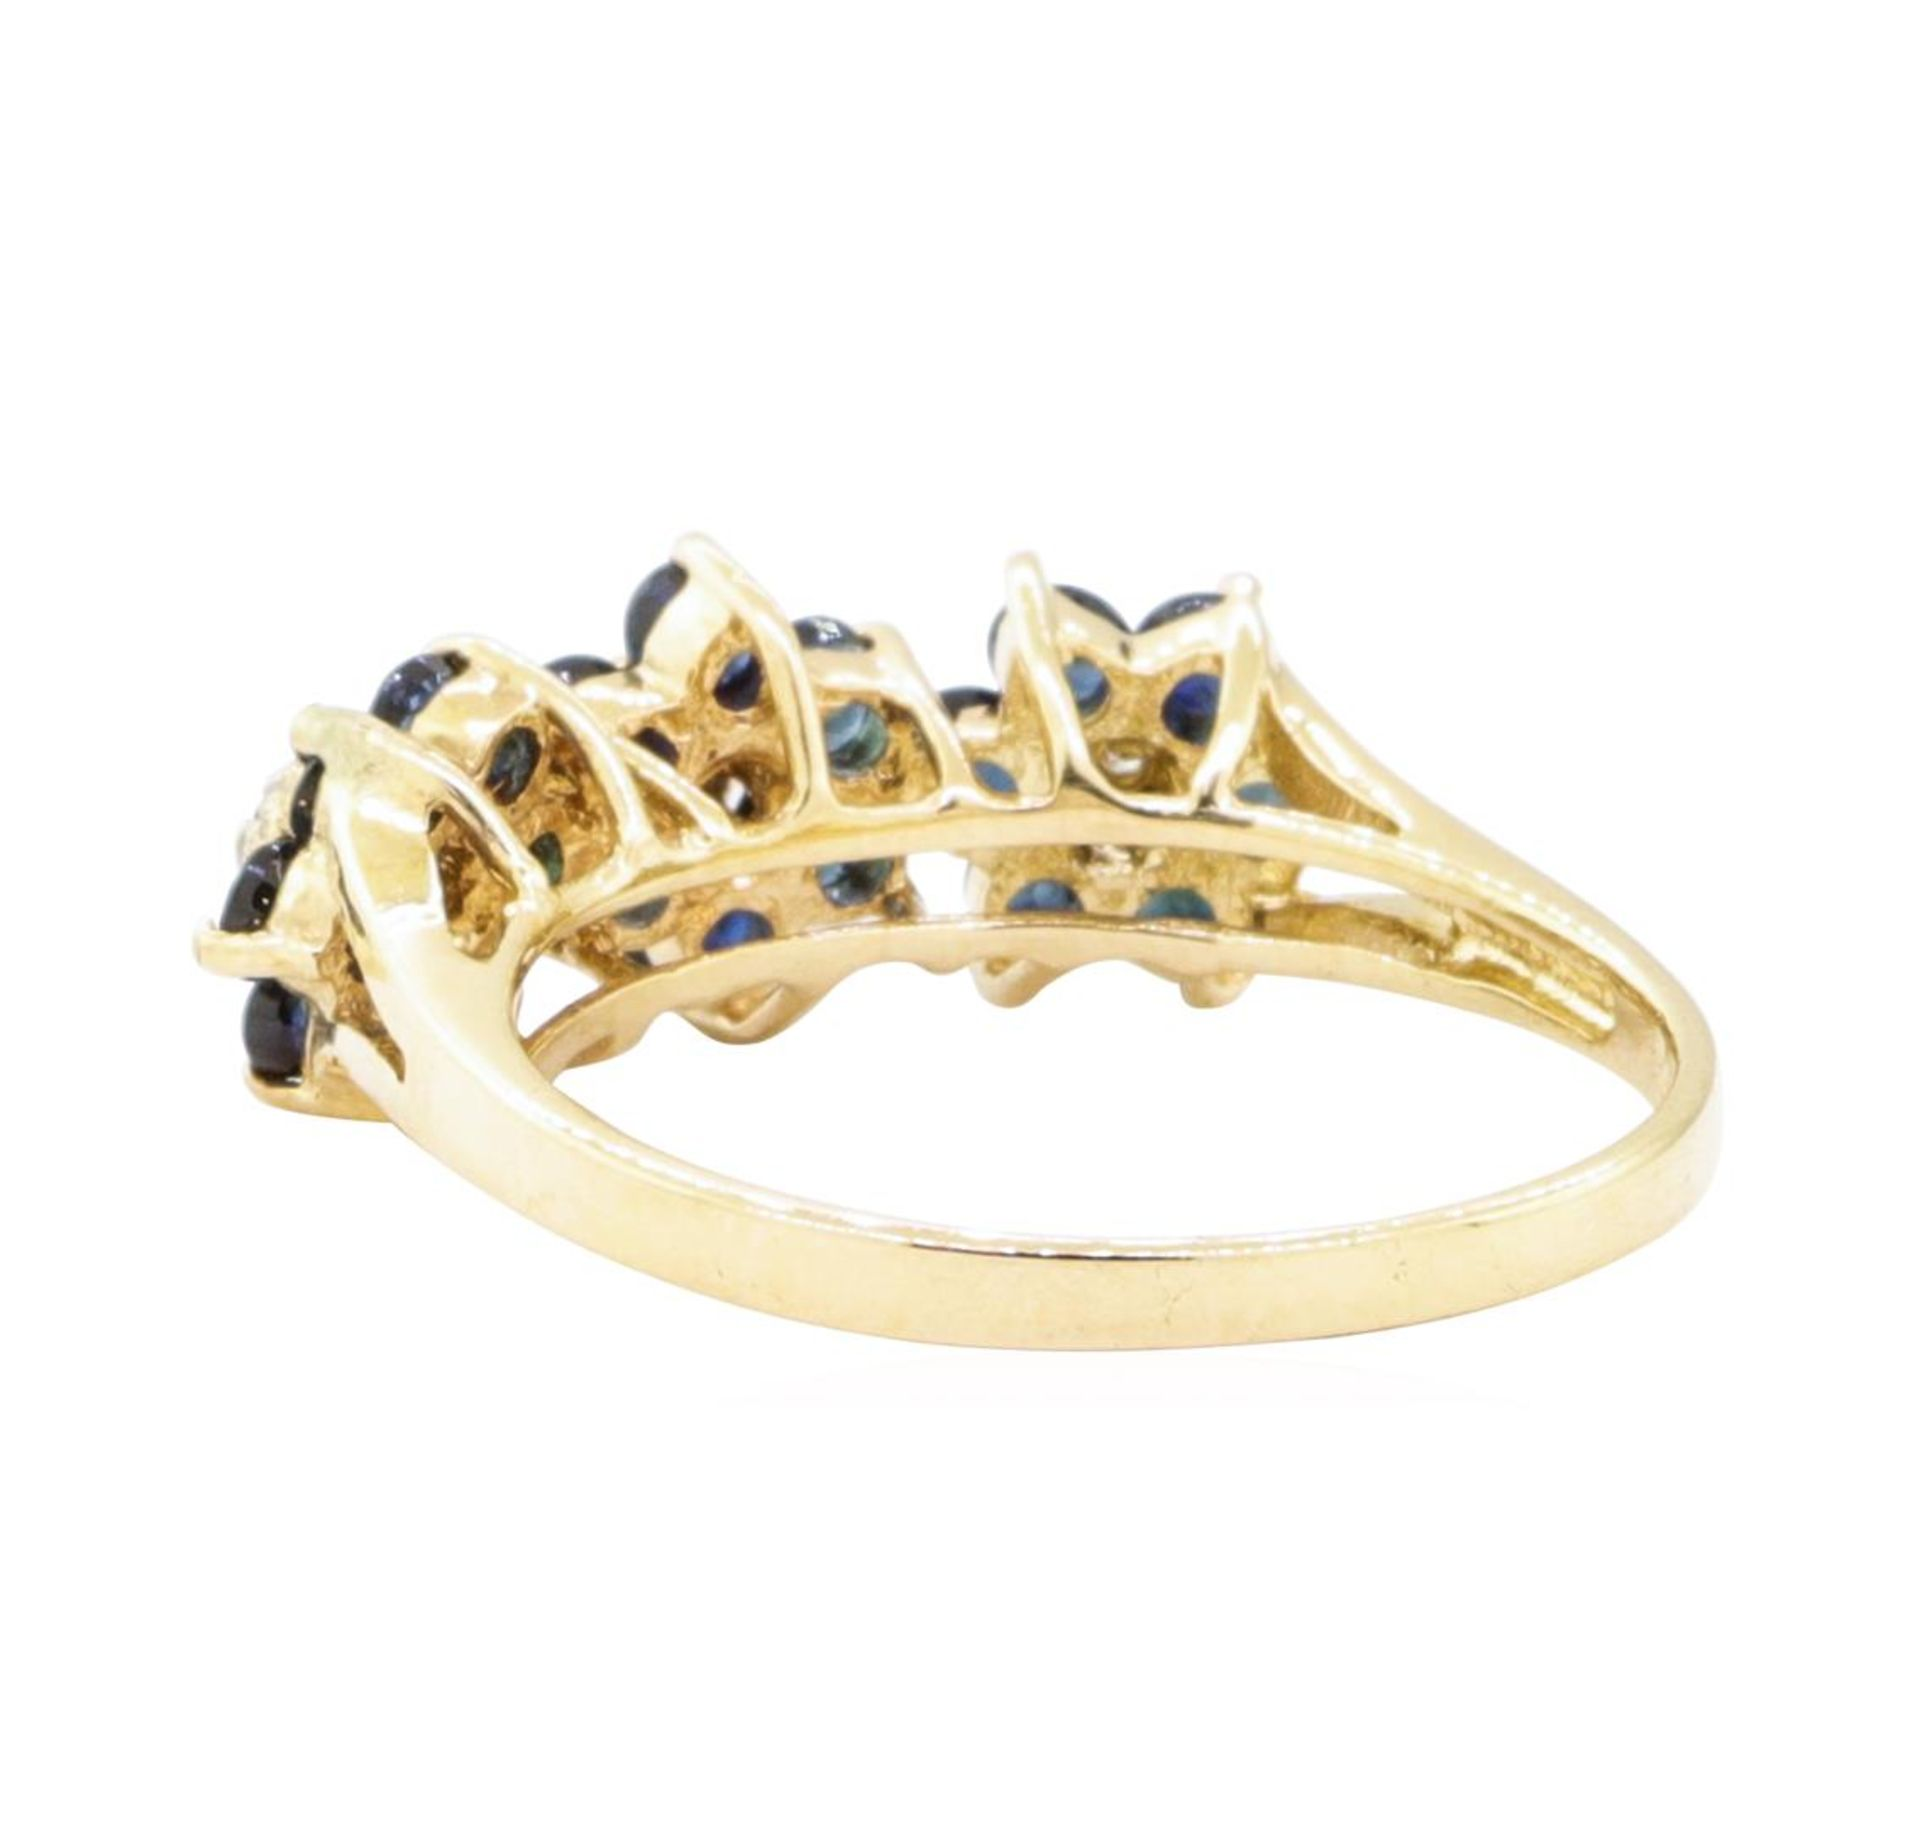 1.05ctw Sapphire and Diamond Ring - 14KT Yellow Gold - Image 3 of 4